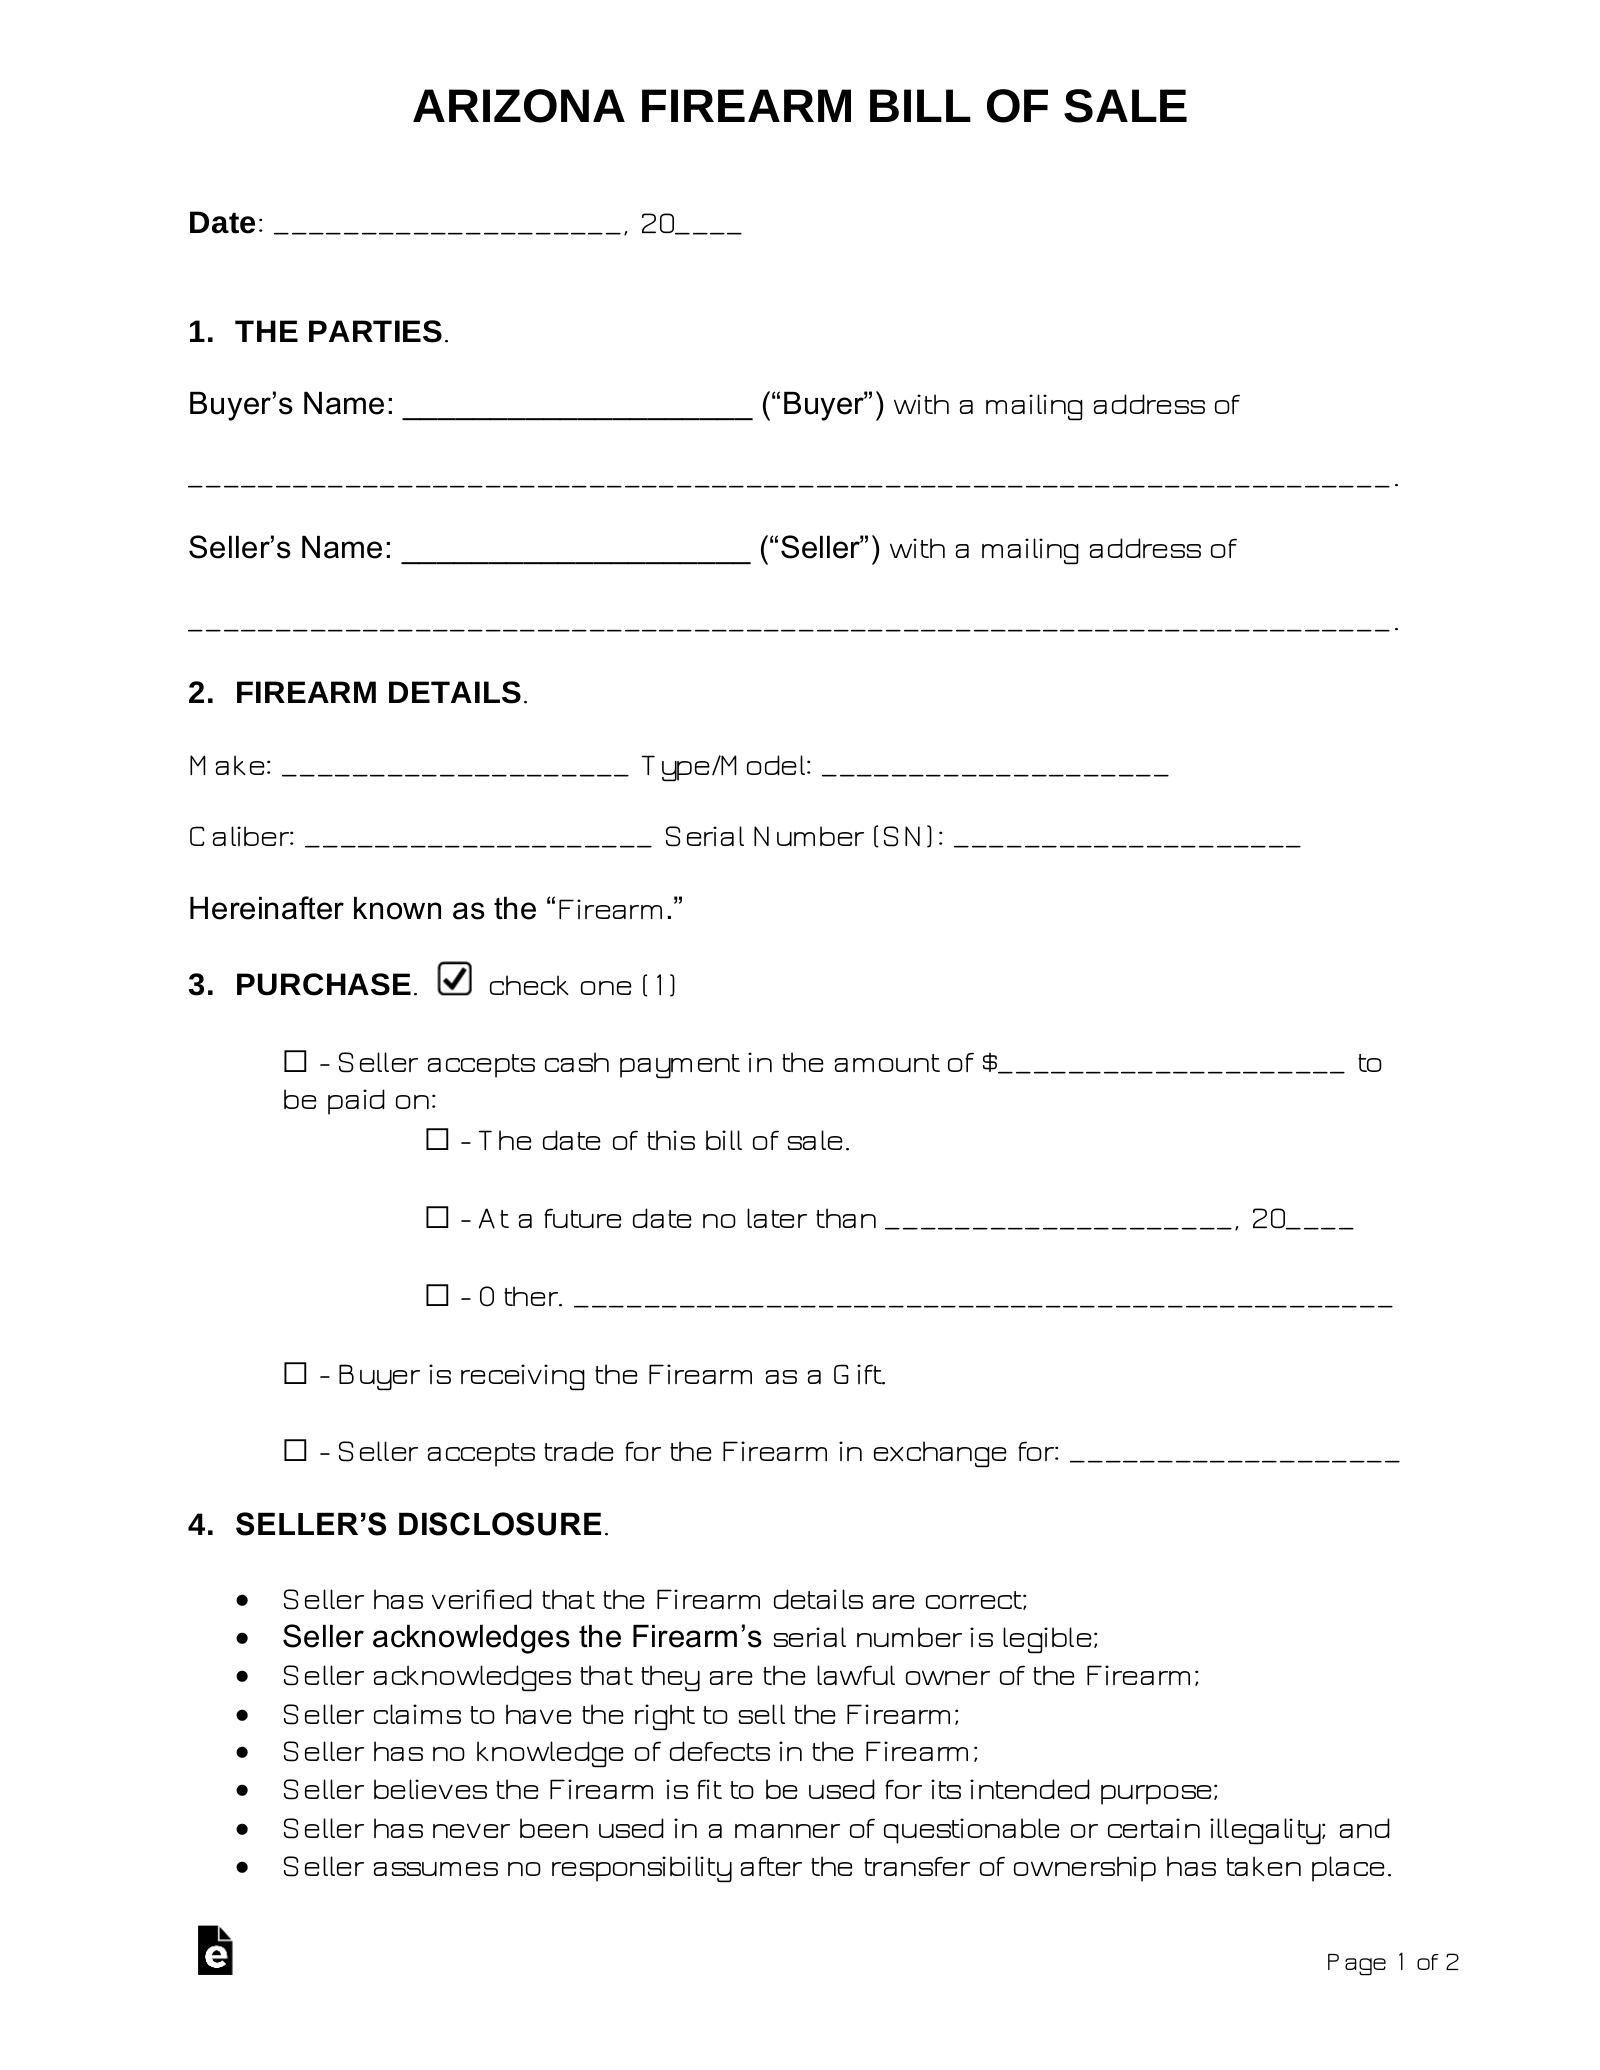 Free Arizona Firearm Bill Of Sale Form Word Pdf